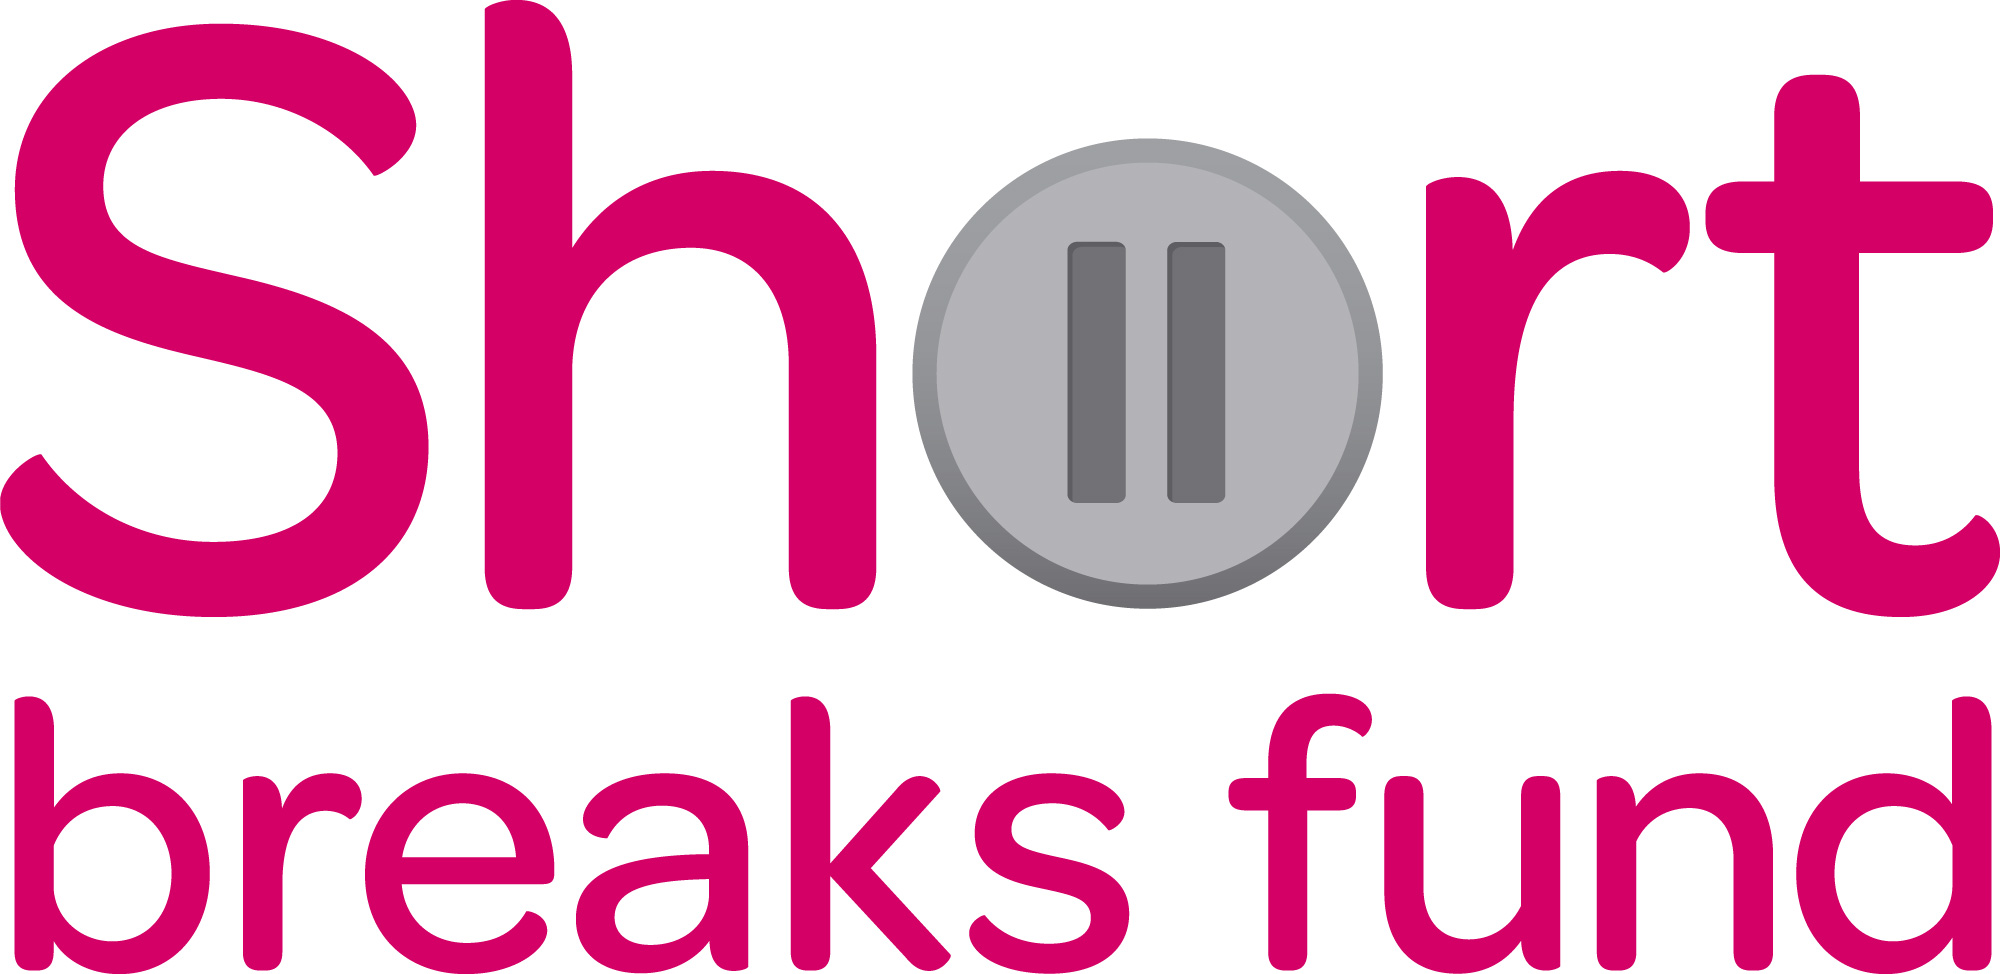 Pink Short Breaks Fund logo